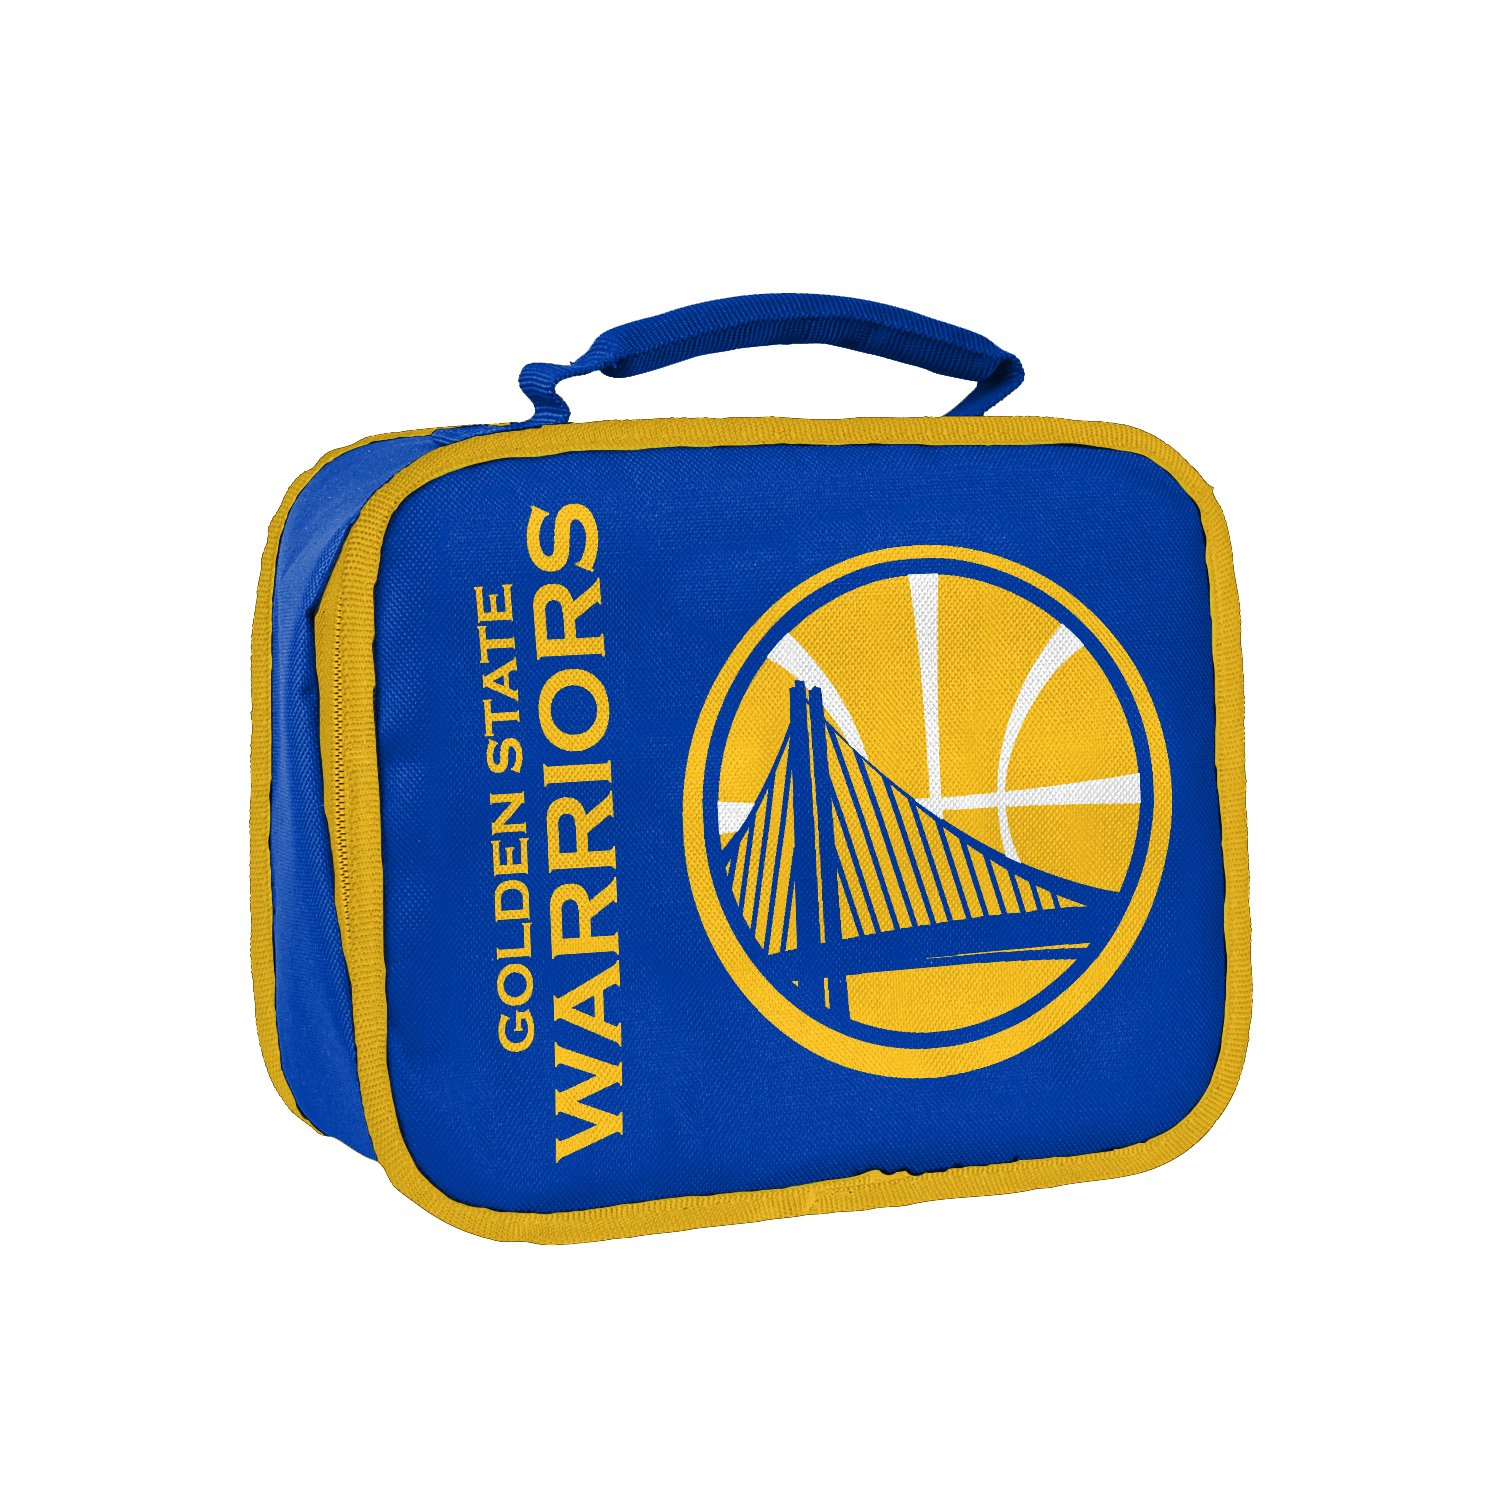 TBFC Golden State Warriors NBA Action Backpack School Book Gym Bag -  Stephen Curry  30 2d1c96bac4